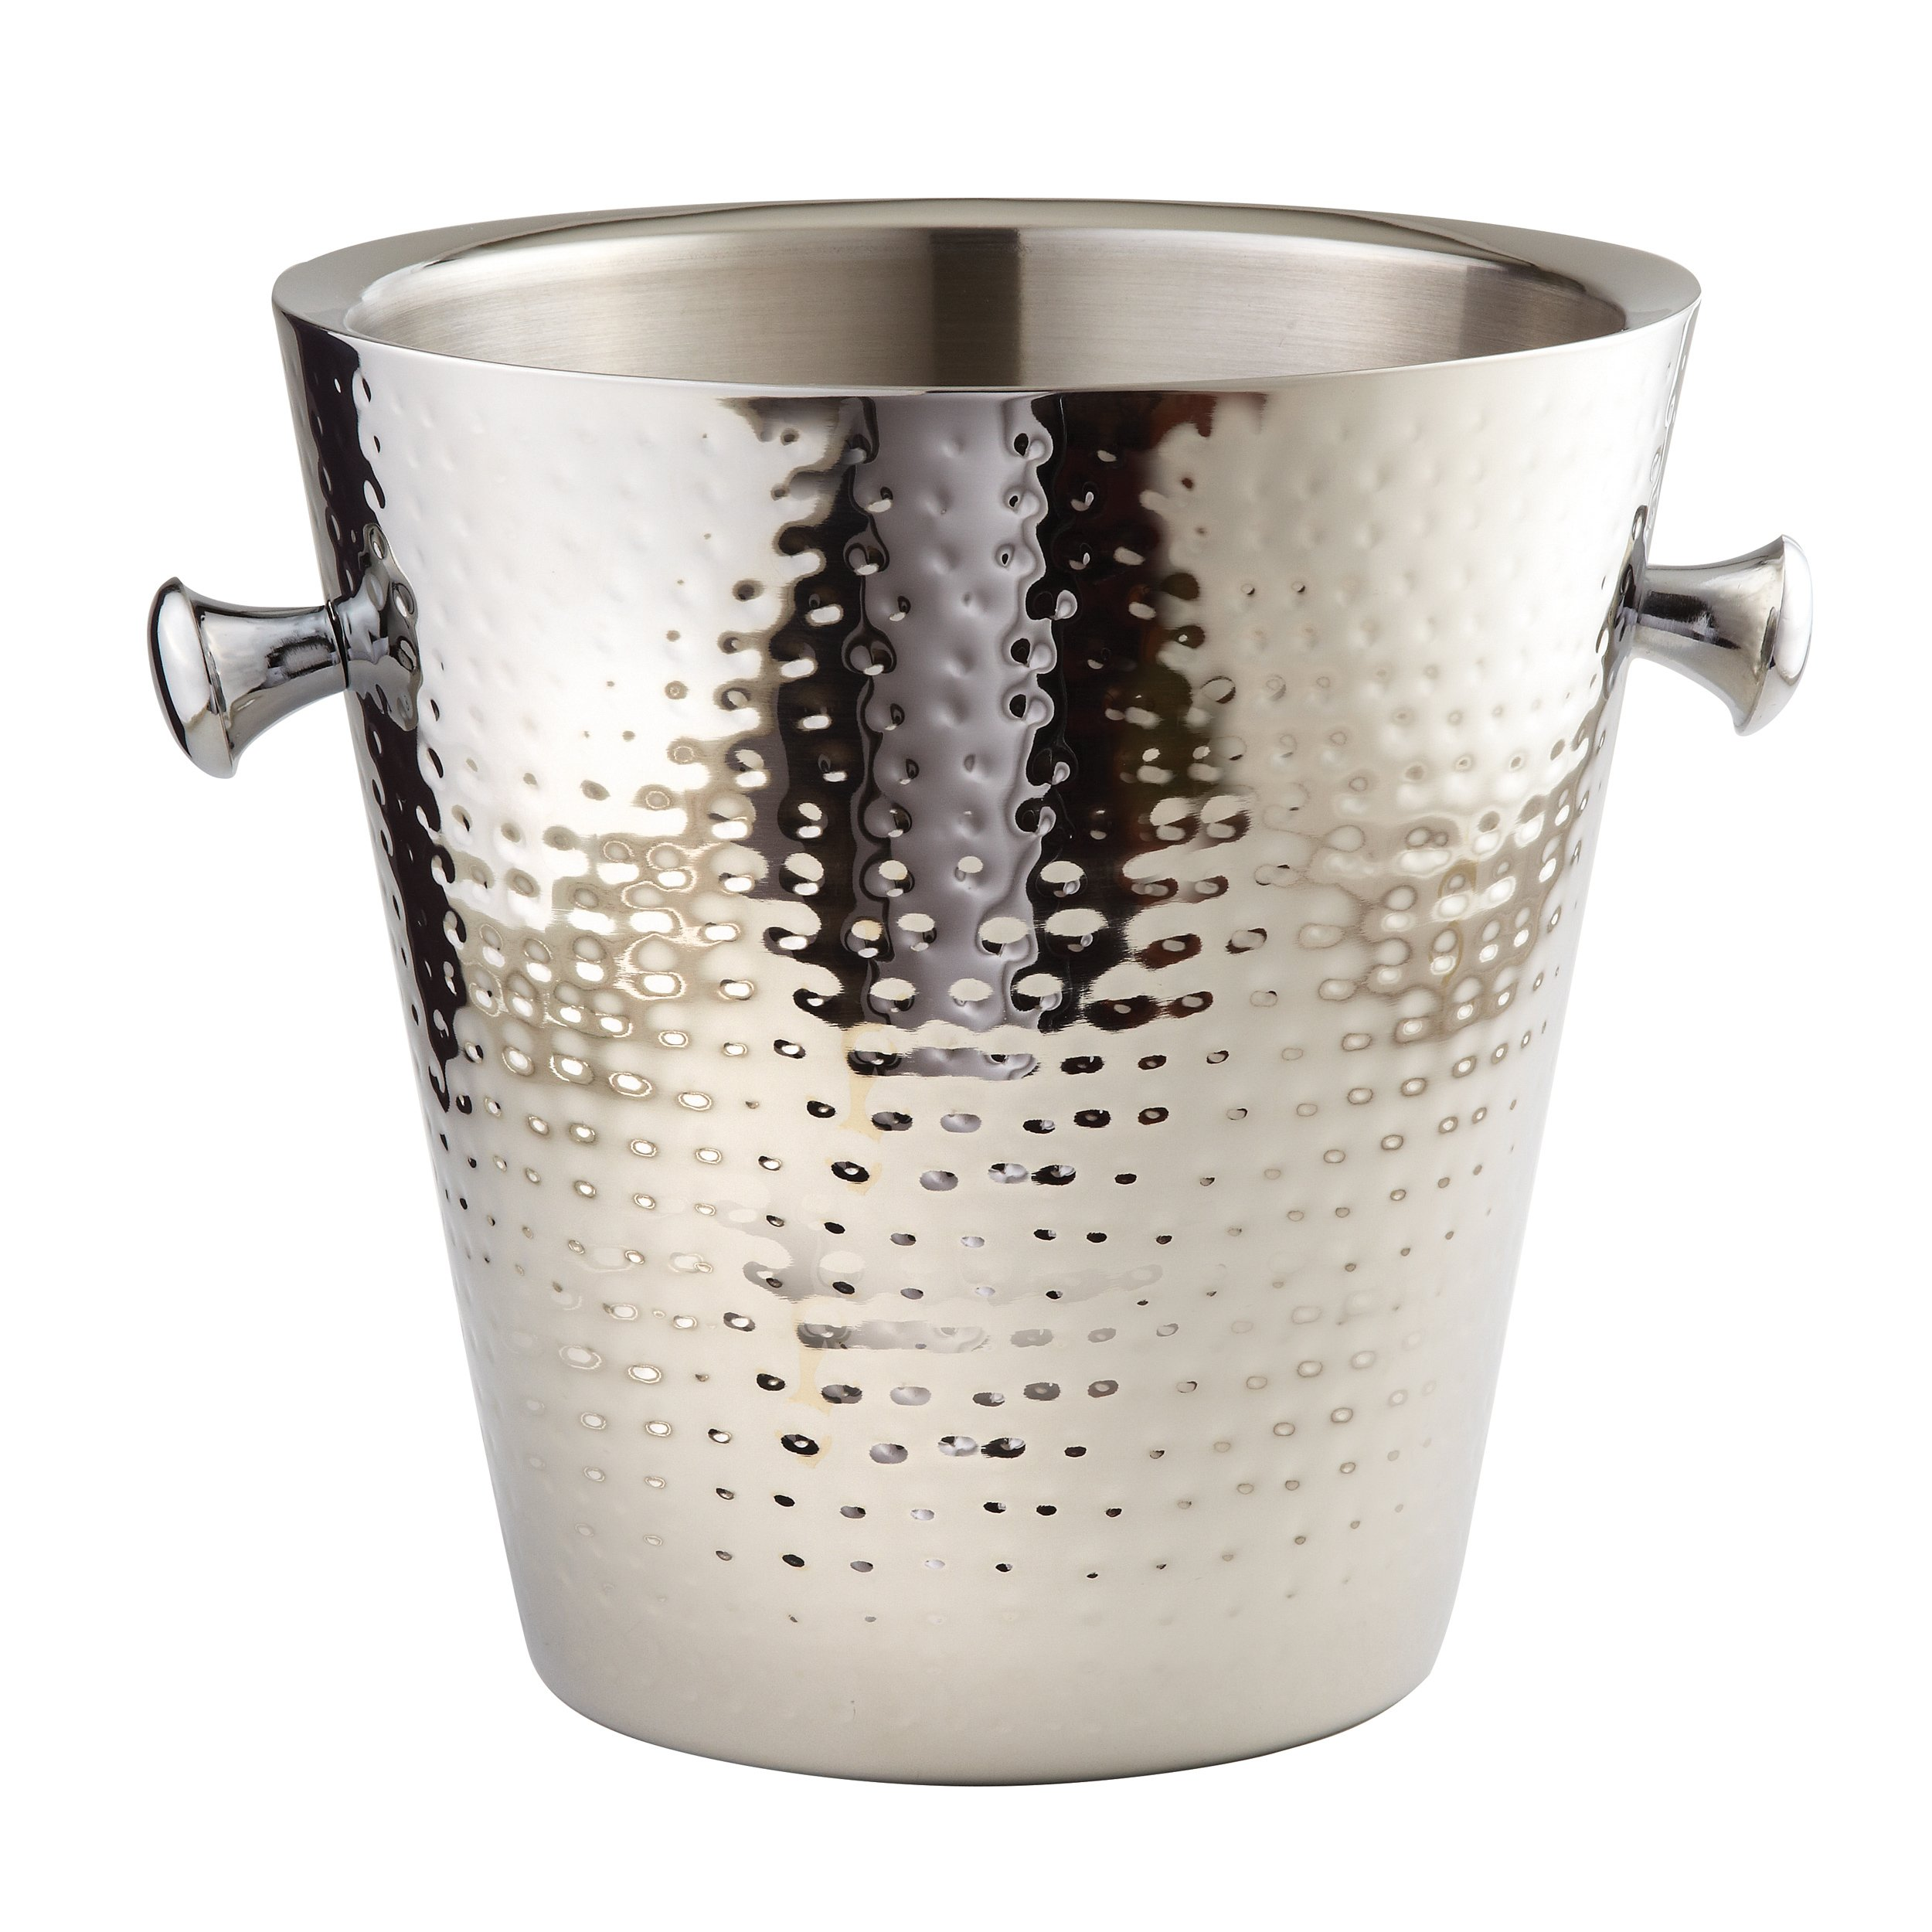 Elegance Hammered Stainless Steel Doublewall Champagne Bucket, 9'', Silver